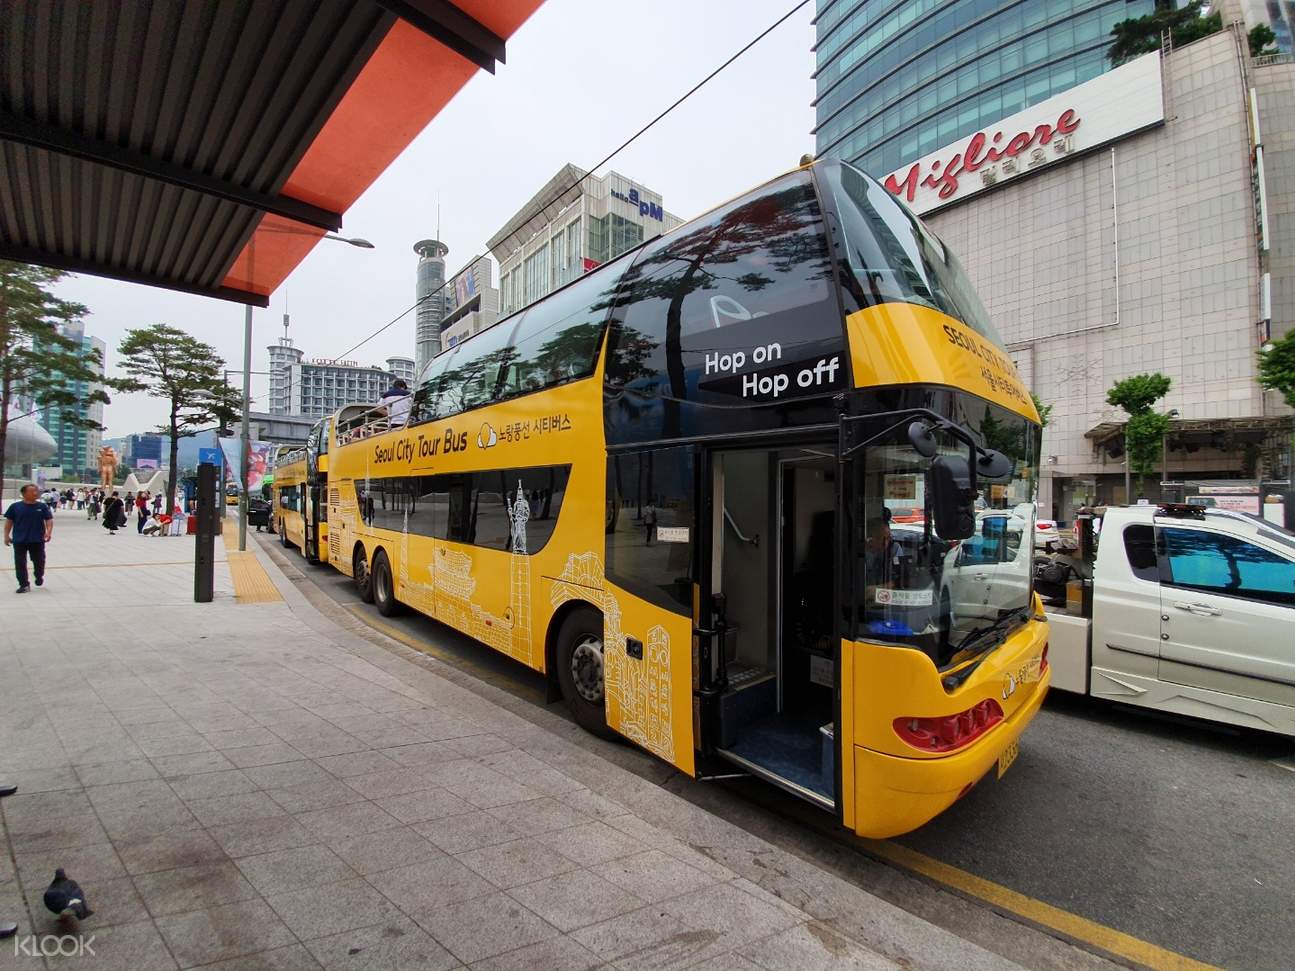 yellow double decker bus side view